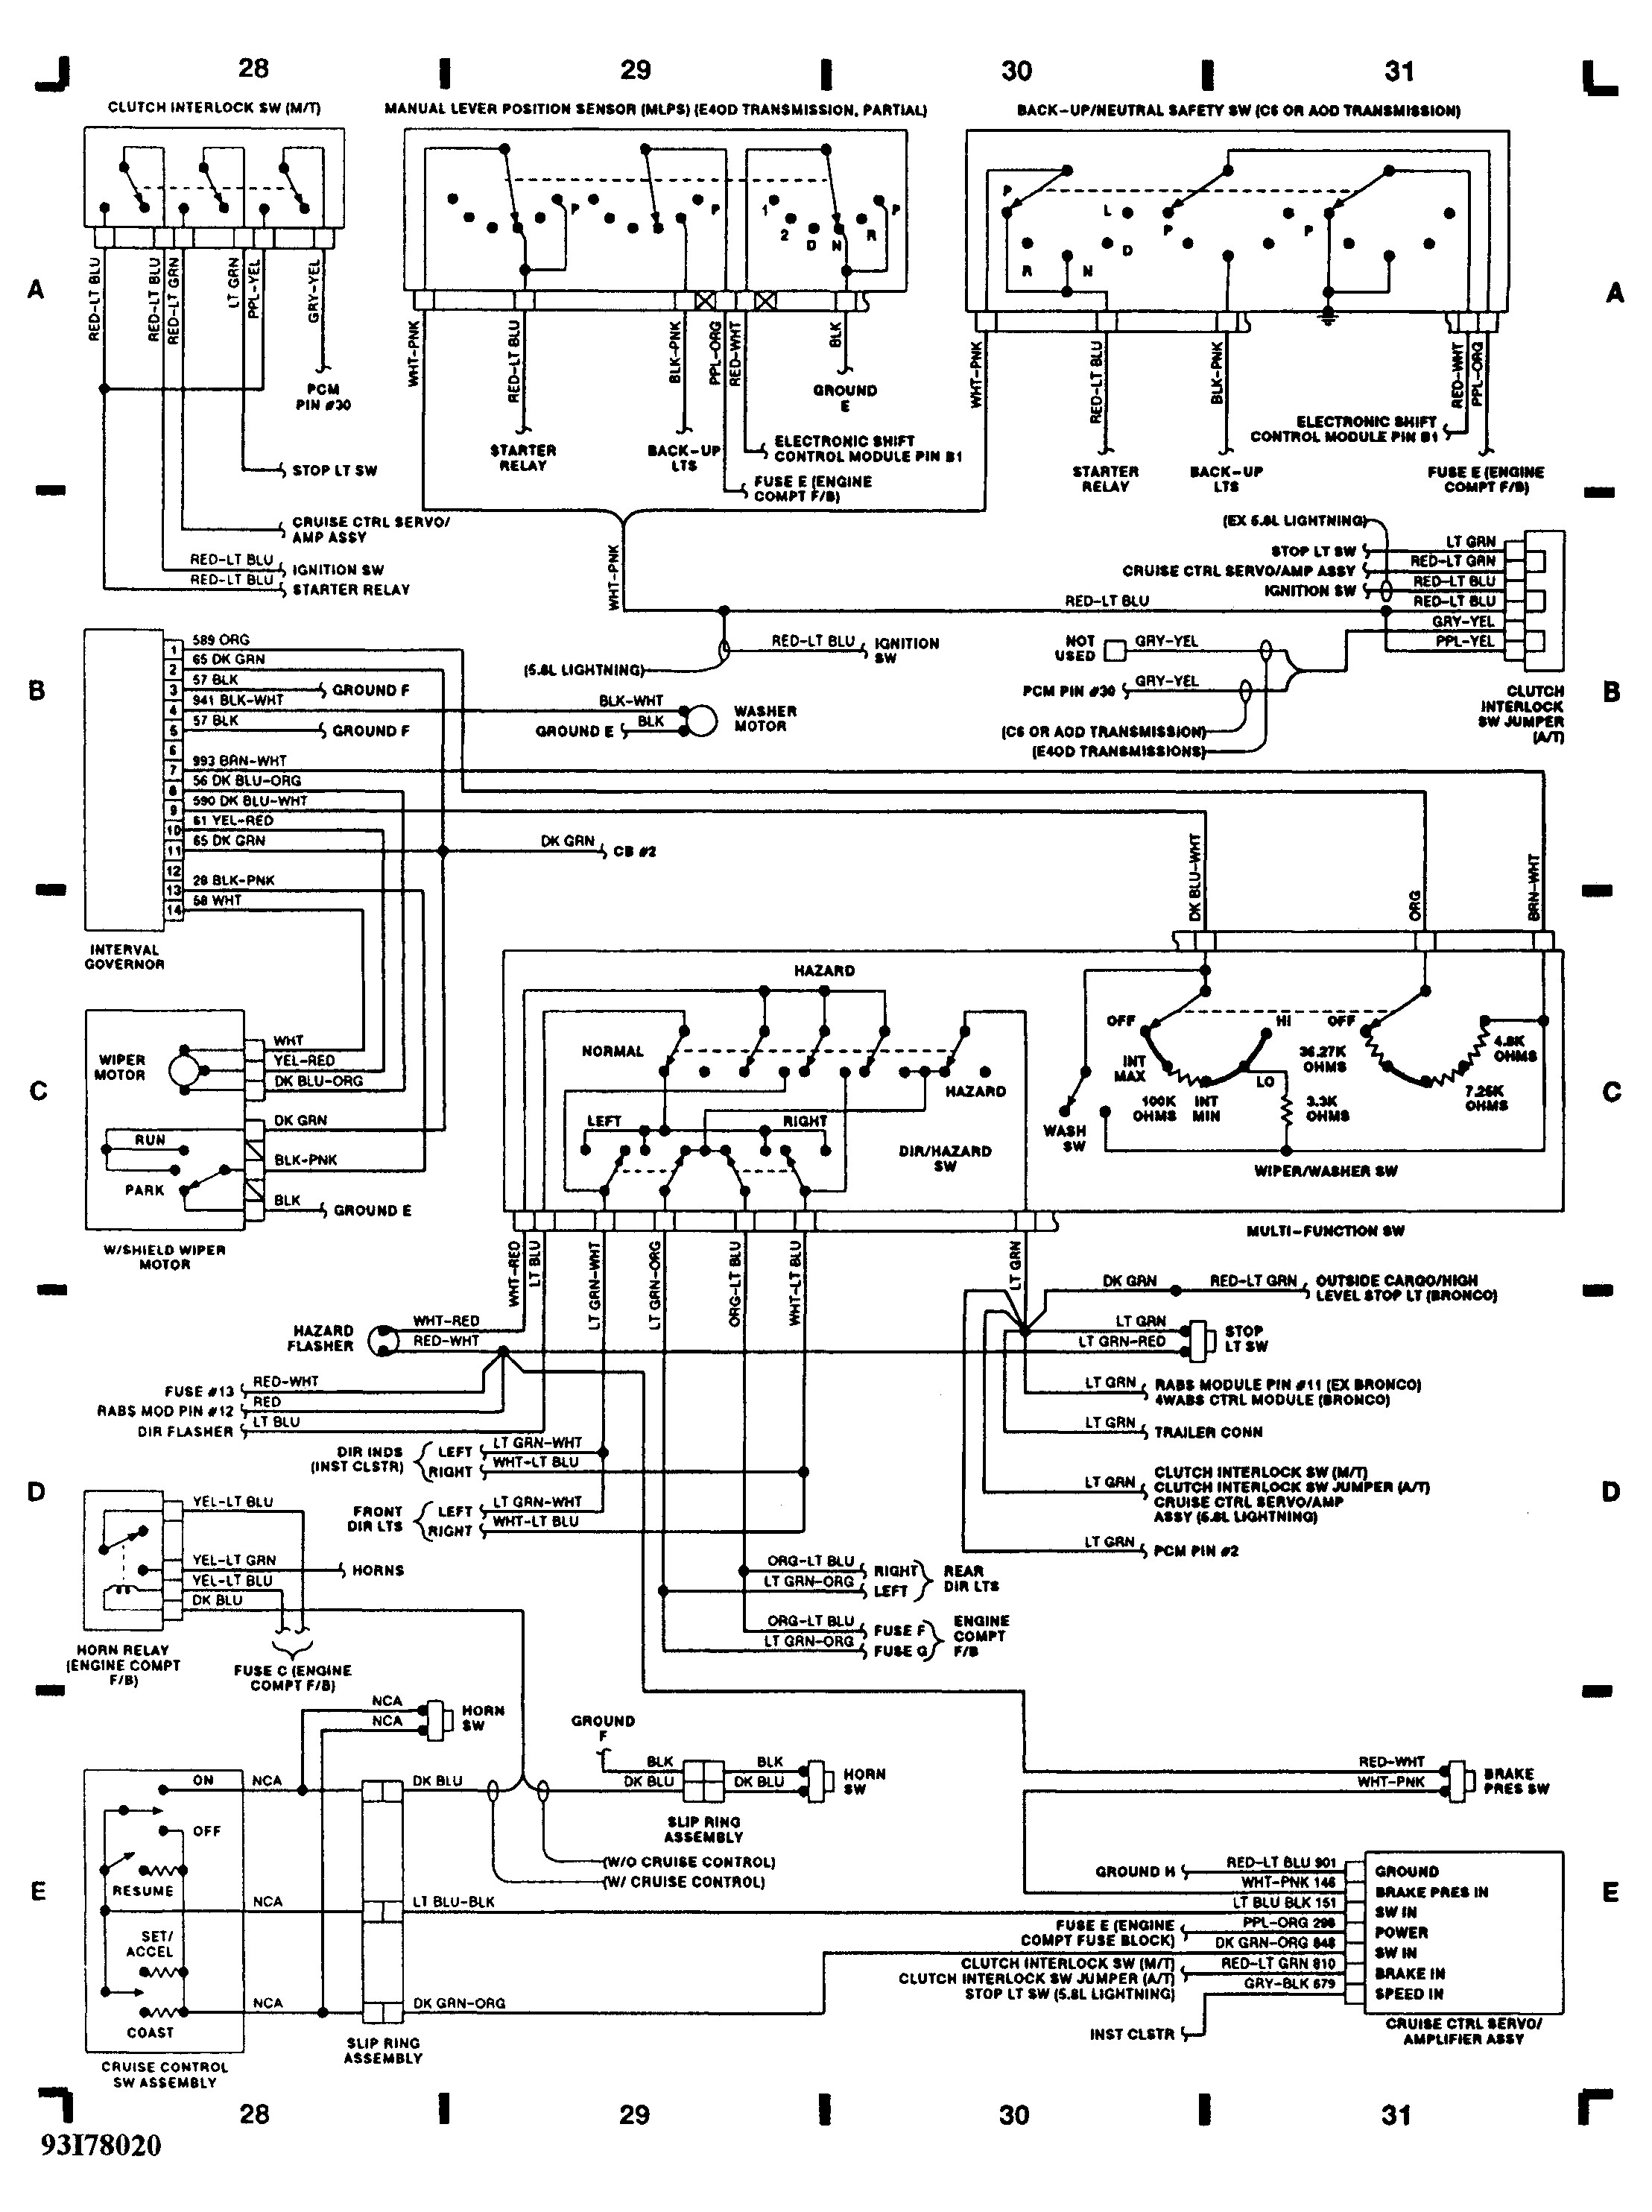 6 0 Wiring Harness Diagram | Wiring Diagram Underhood Wiring Harness Ford on 6.0 powerstroke engine wiring harness, ford engine wiring harness, 2005 chevy aveo engine wiring harness, 51 ford wiring harness, car wiring harness, t one wiring harness, ford 7.3 diesel engine diagram, automotive wiring harness, ford truck wiring harness, 1960 ford f100 wiring harness,